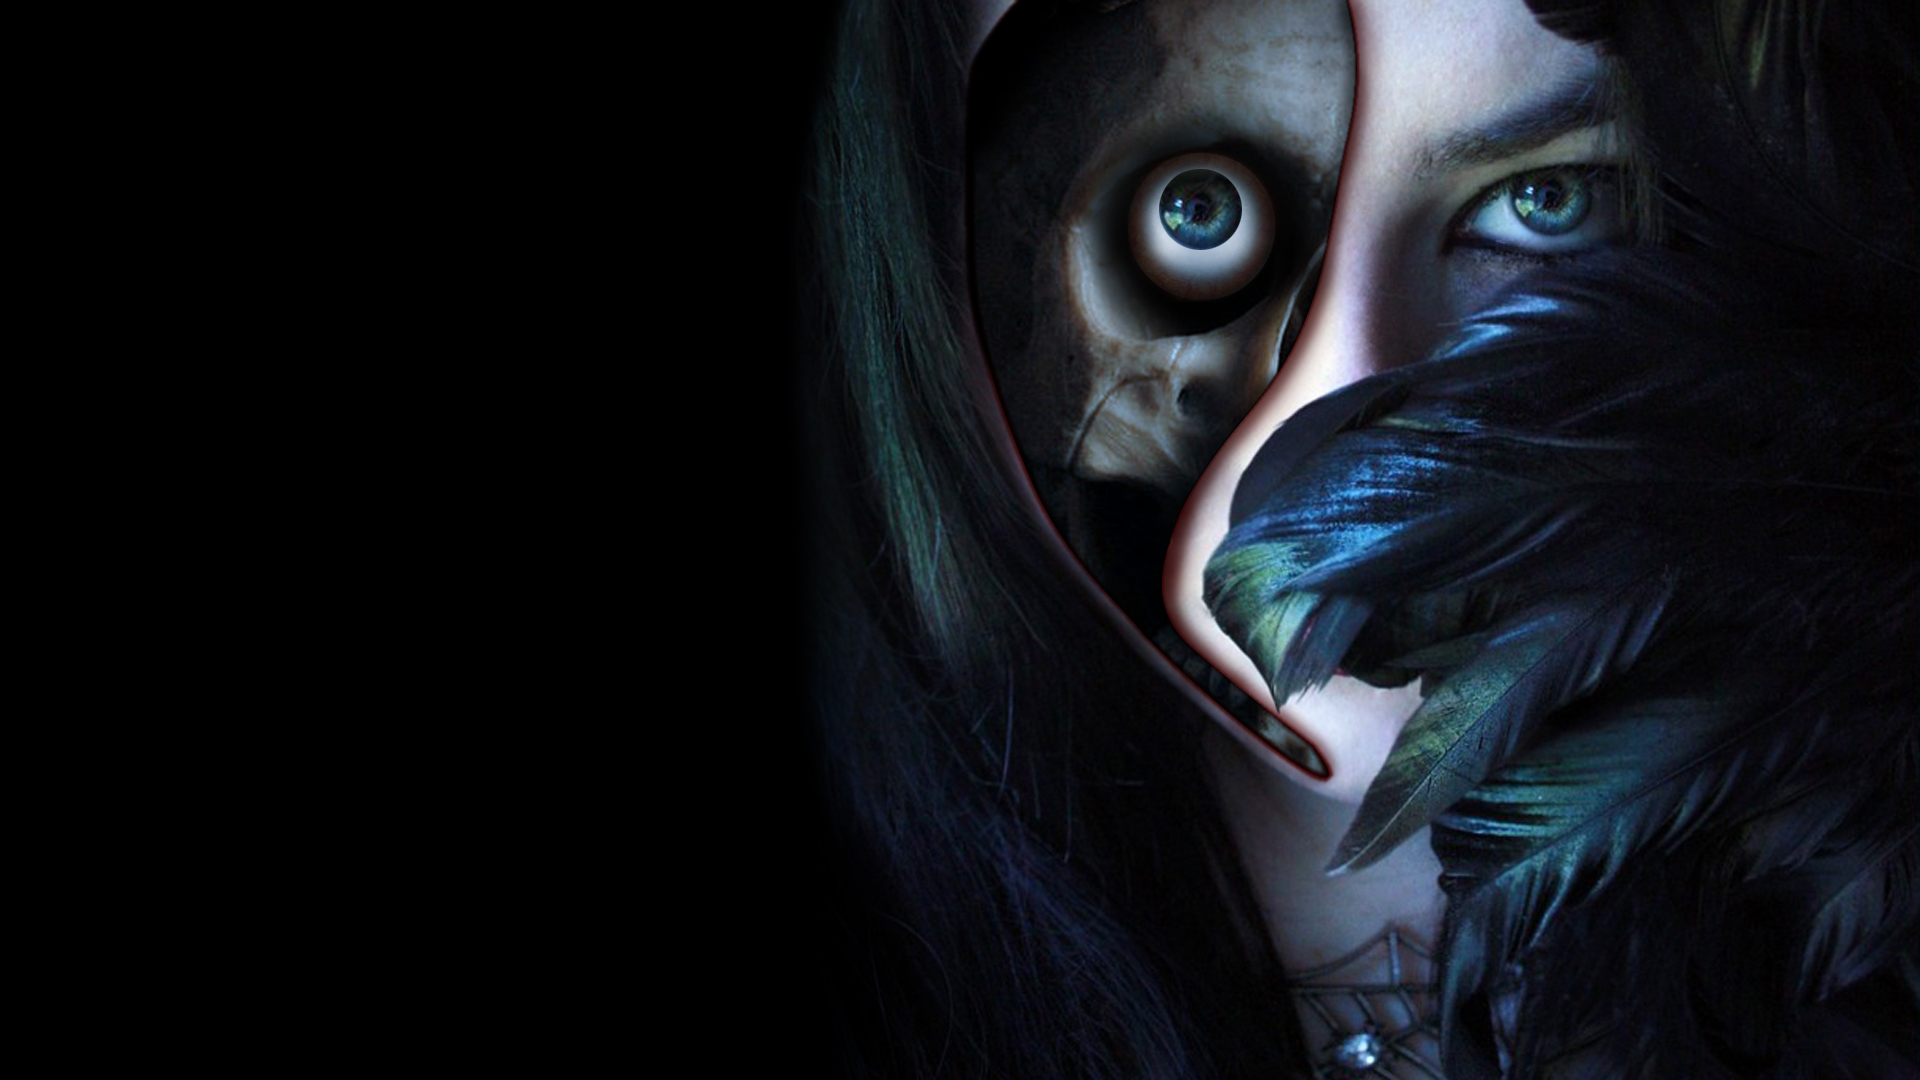 1024x768px 3d Scary Wallpapers Blue Eye Girl Vampire